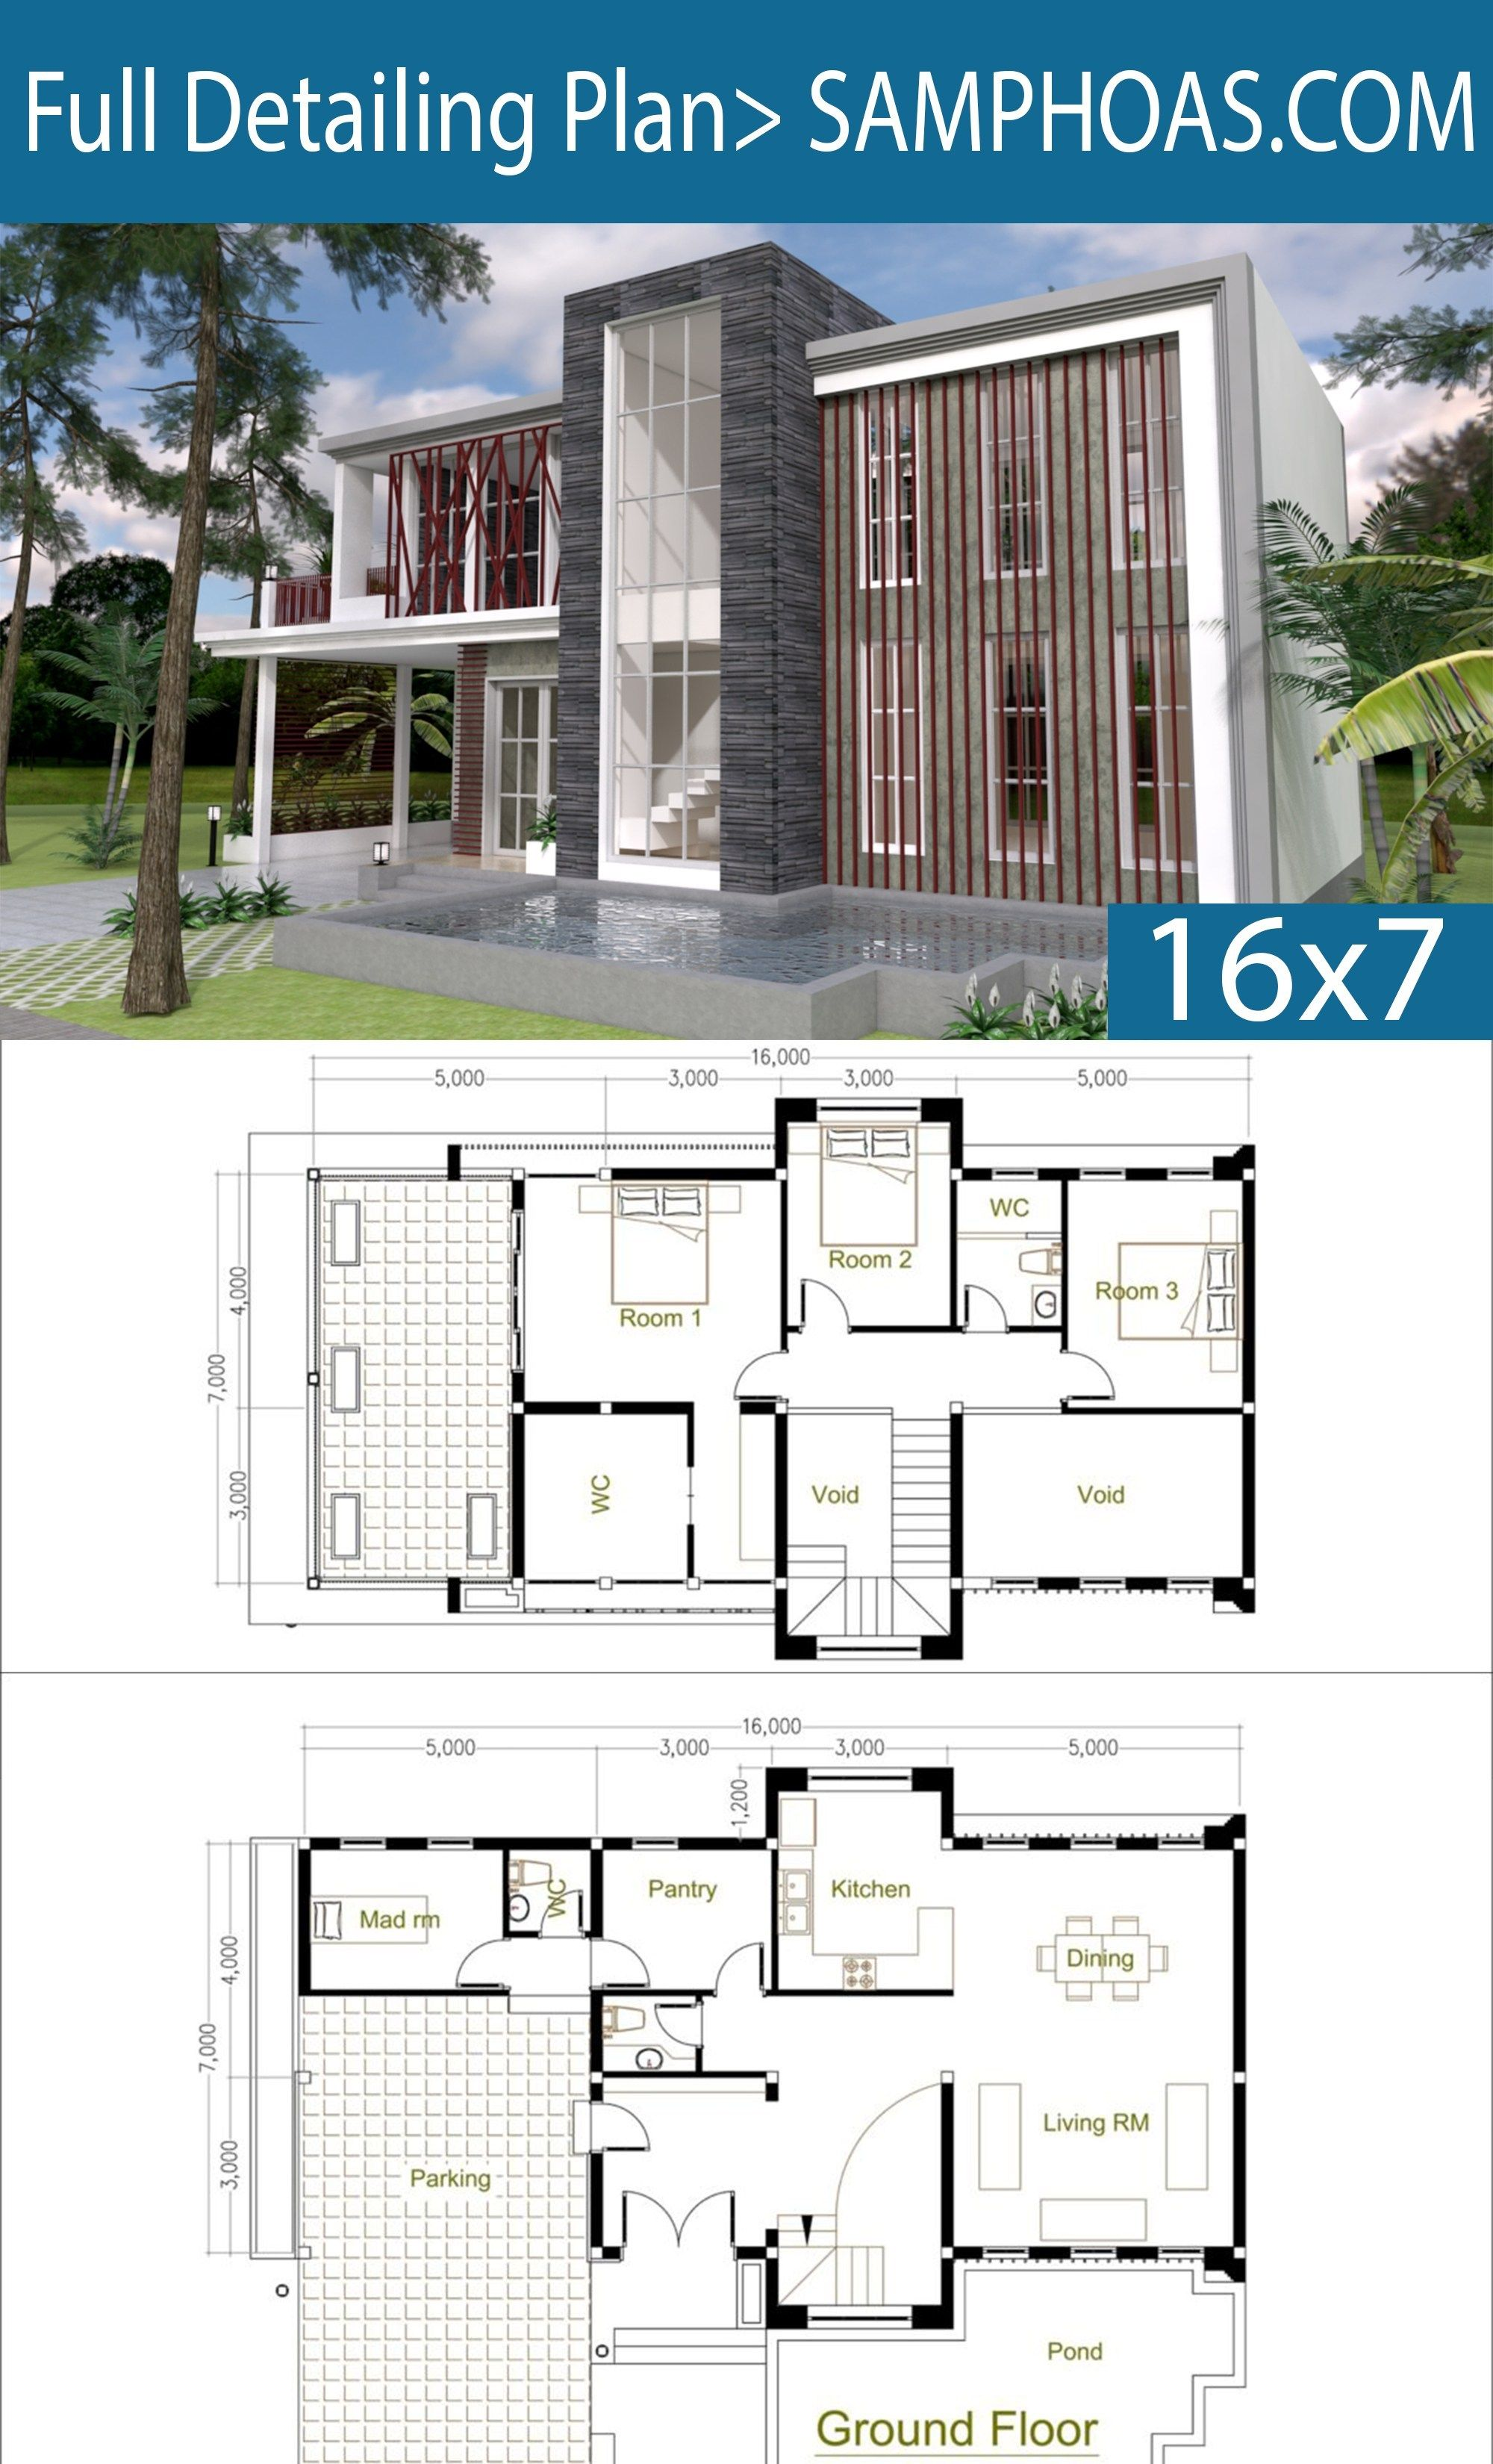 3 Bedrooms Modern Home Plan 7x16m Samphoas Plan Big Modern Houses Modern House Floor Plans Modern House Plans